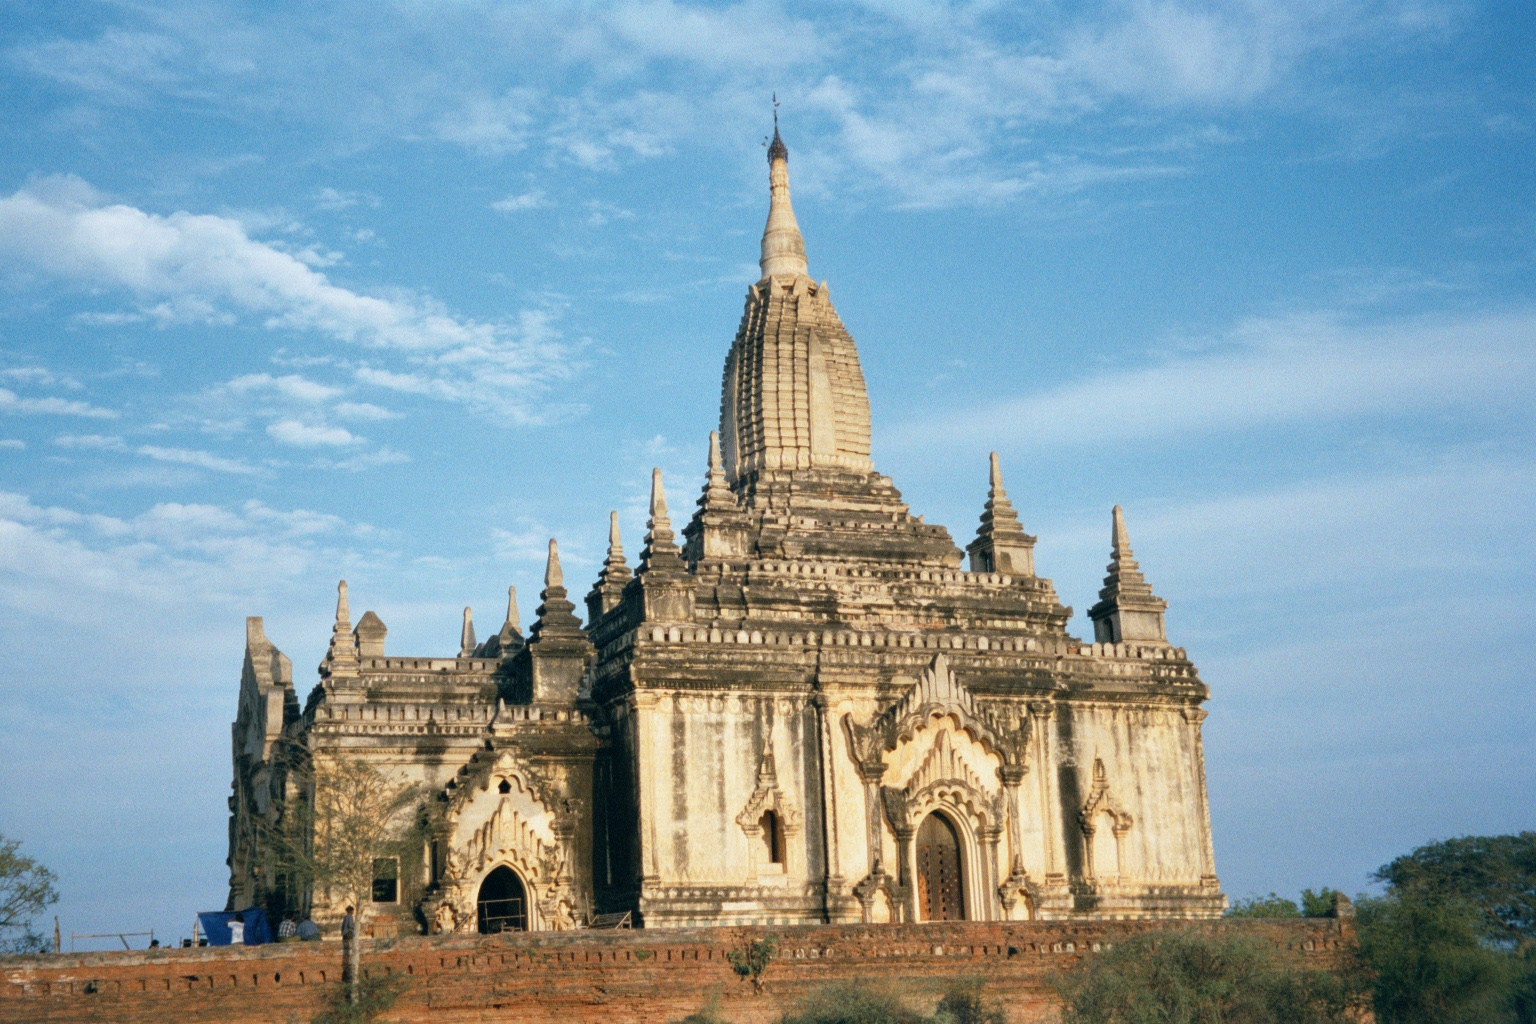 Burma / Myanmar: Pagan 2: More Monuments